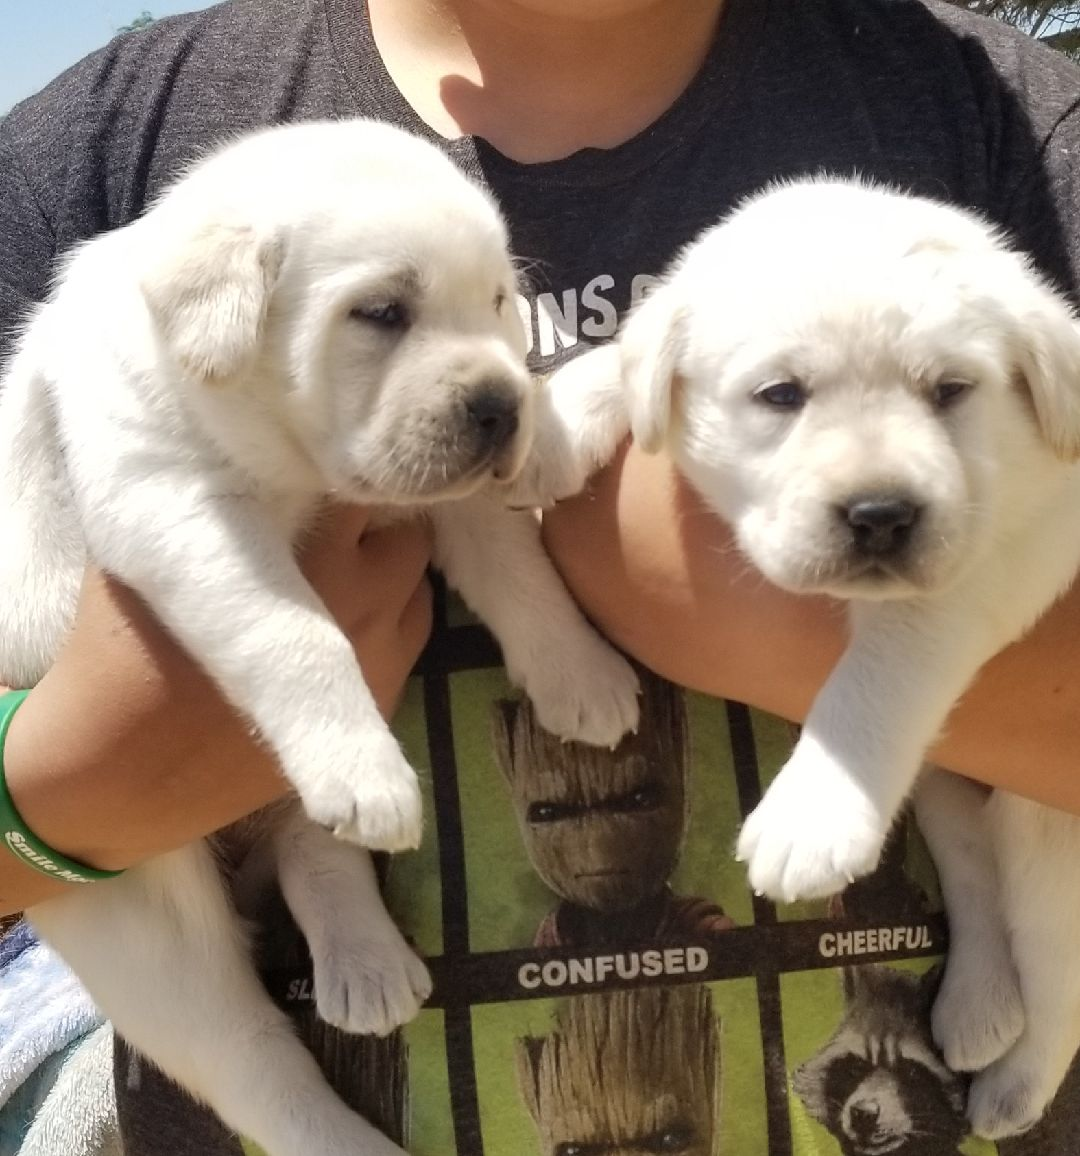 Gorgeous White Labrador Retriever Puppies Big Beautiful English Blockheads 2 females are available